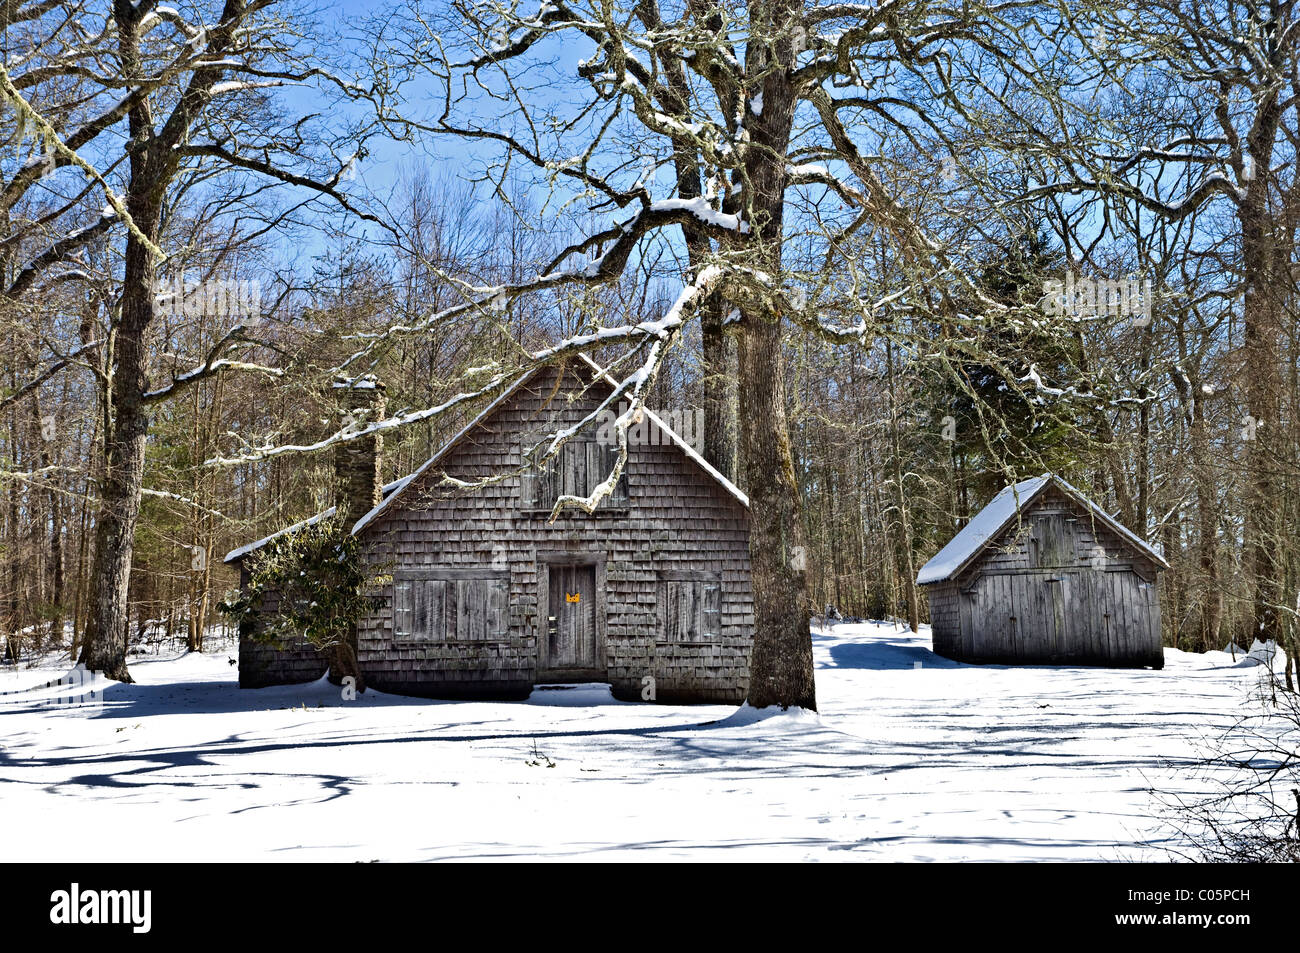 Old forestry buildings in the winter landscape, Wilson Lick ranger station in North Carolina. - Stock Image